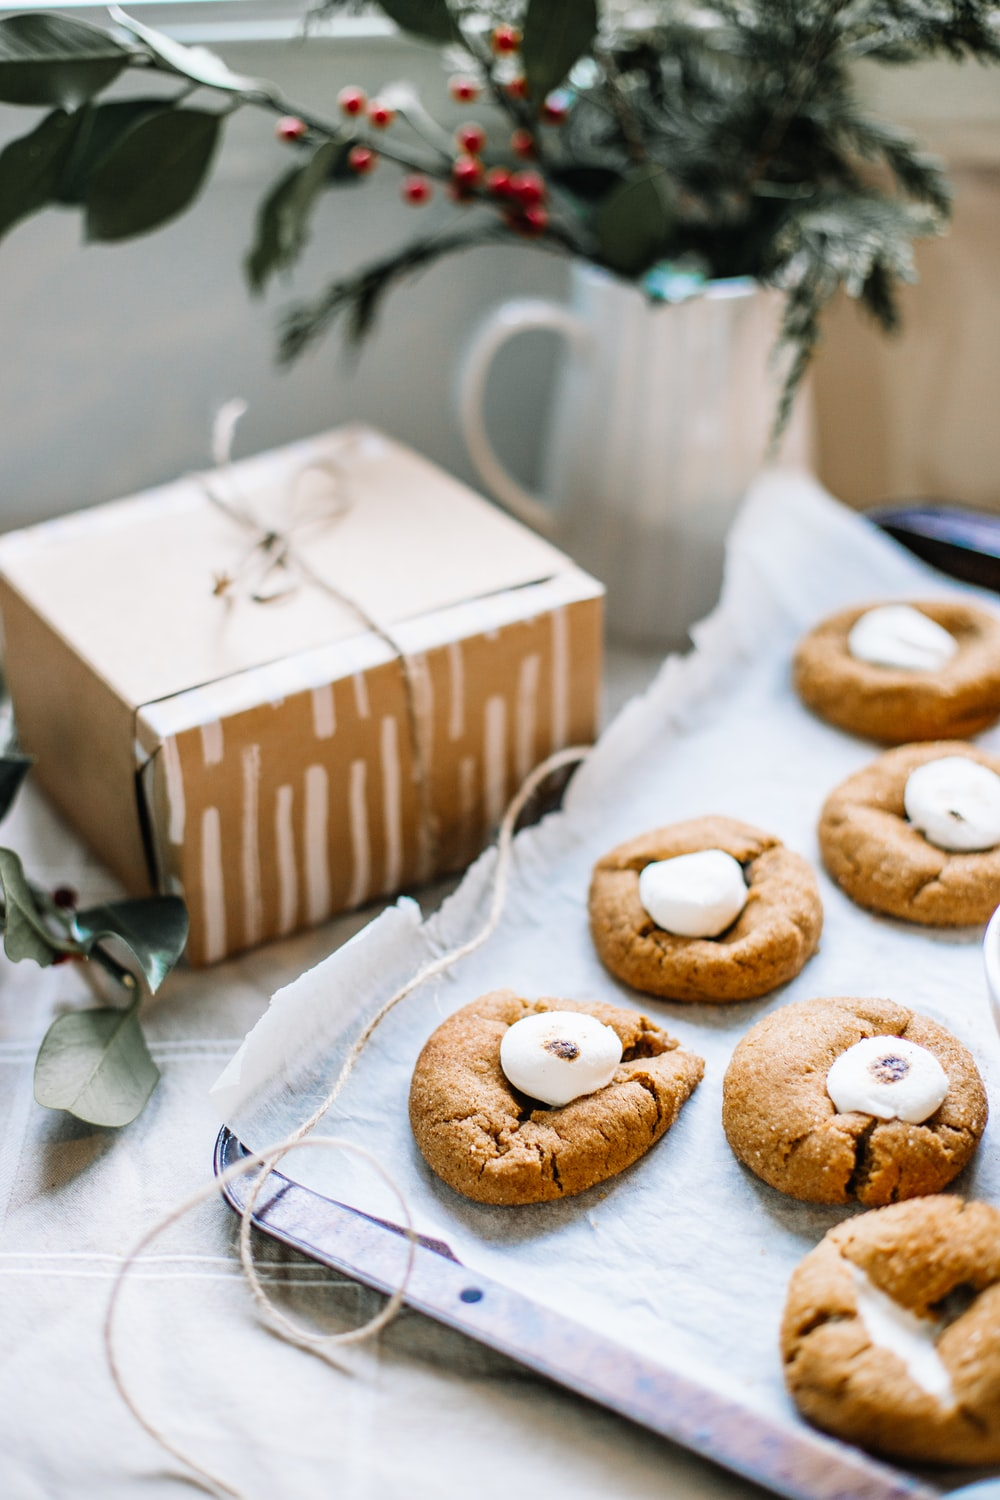 brown and white box with white and brown donuts